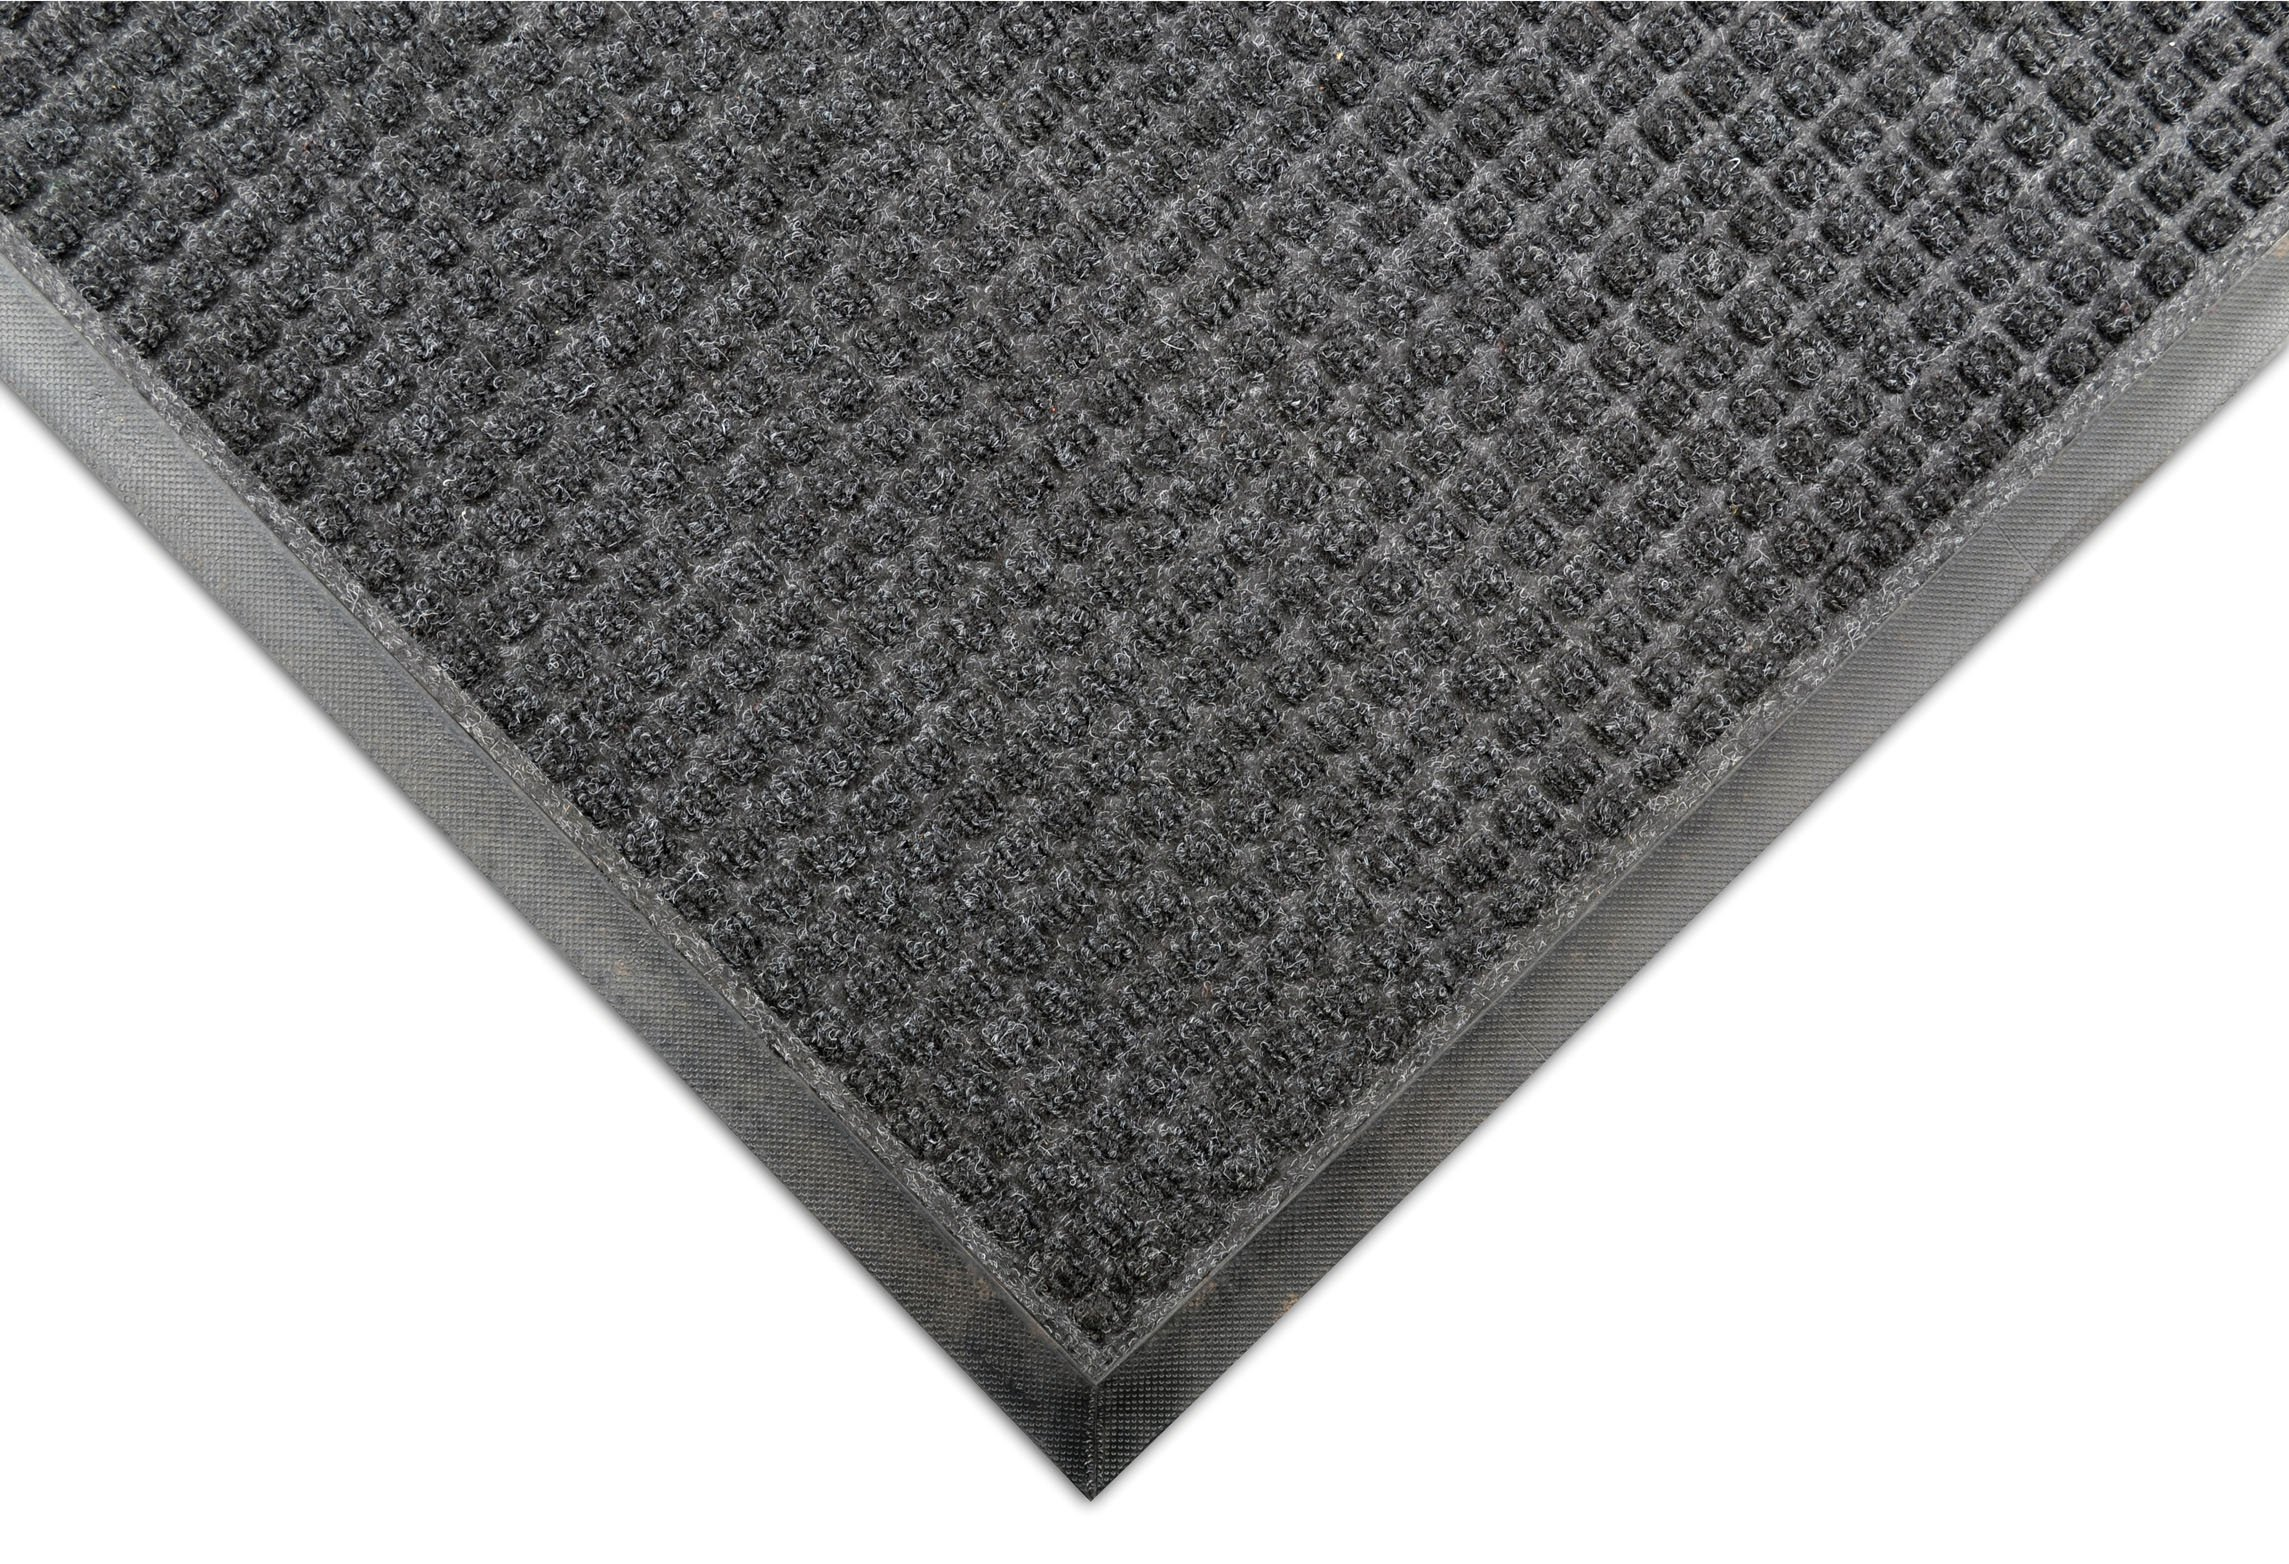 Notrax 166 Guzzler Entrance Mat, for Lobbies and Entranceways, 3' Width x 5' Length x 1/4'' Thickness, Charcoal